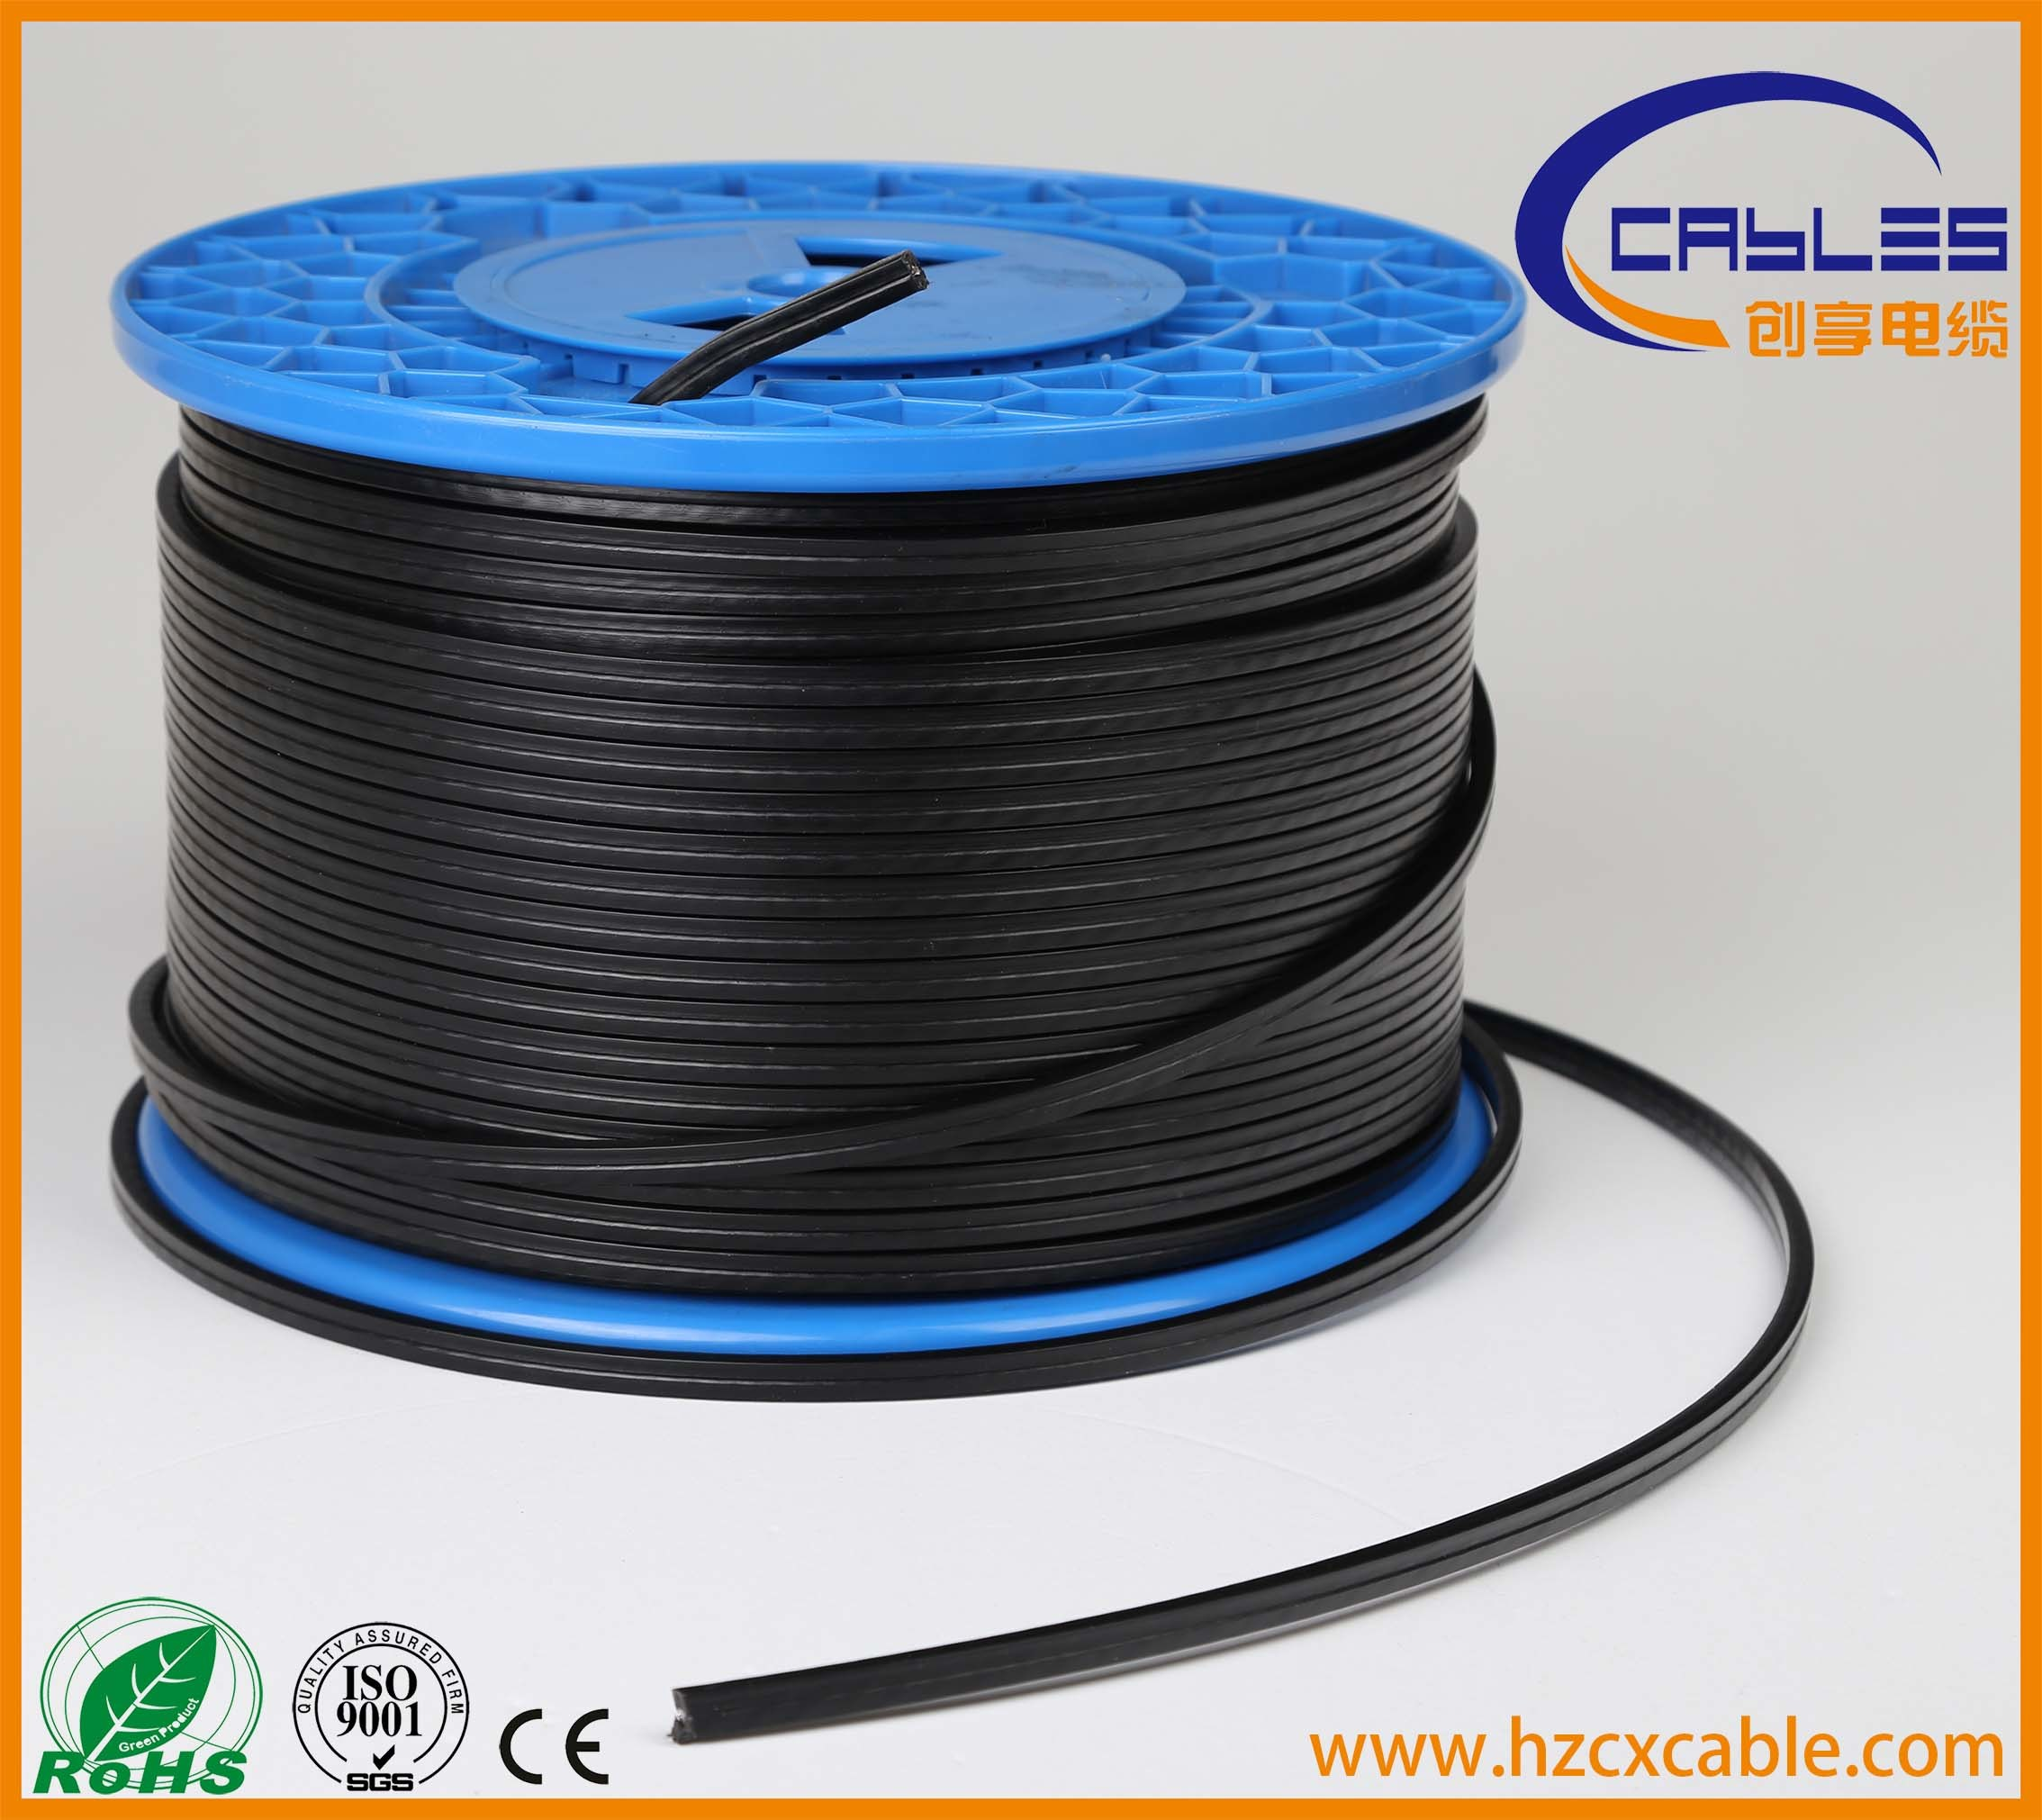 China Competitive Price Coaxial Cable Rg59 with Power Cable Photos ...